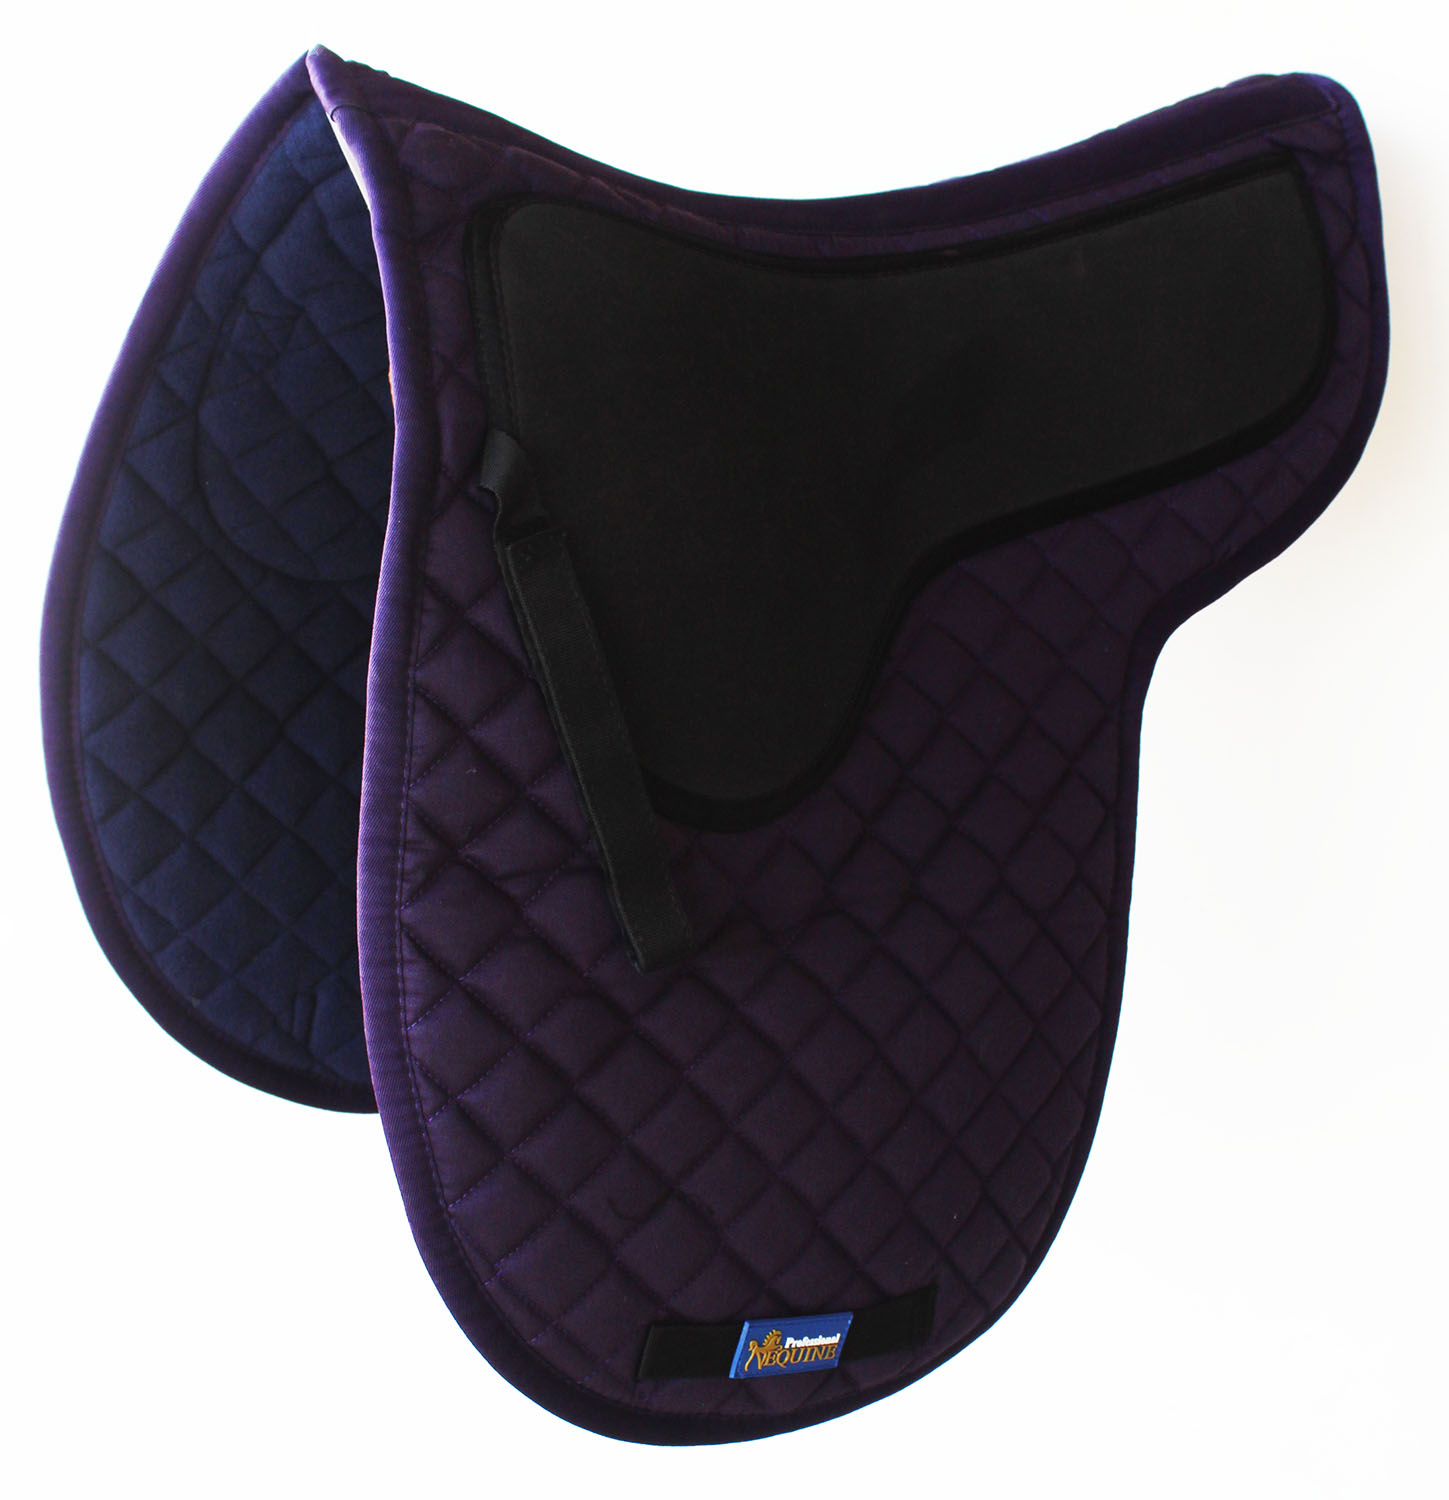 Horse Cotton Quilted  Jumping ENGLISH SADDLE PAD Trail Contoured Gel Purple 72F22  sale online save 70%